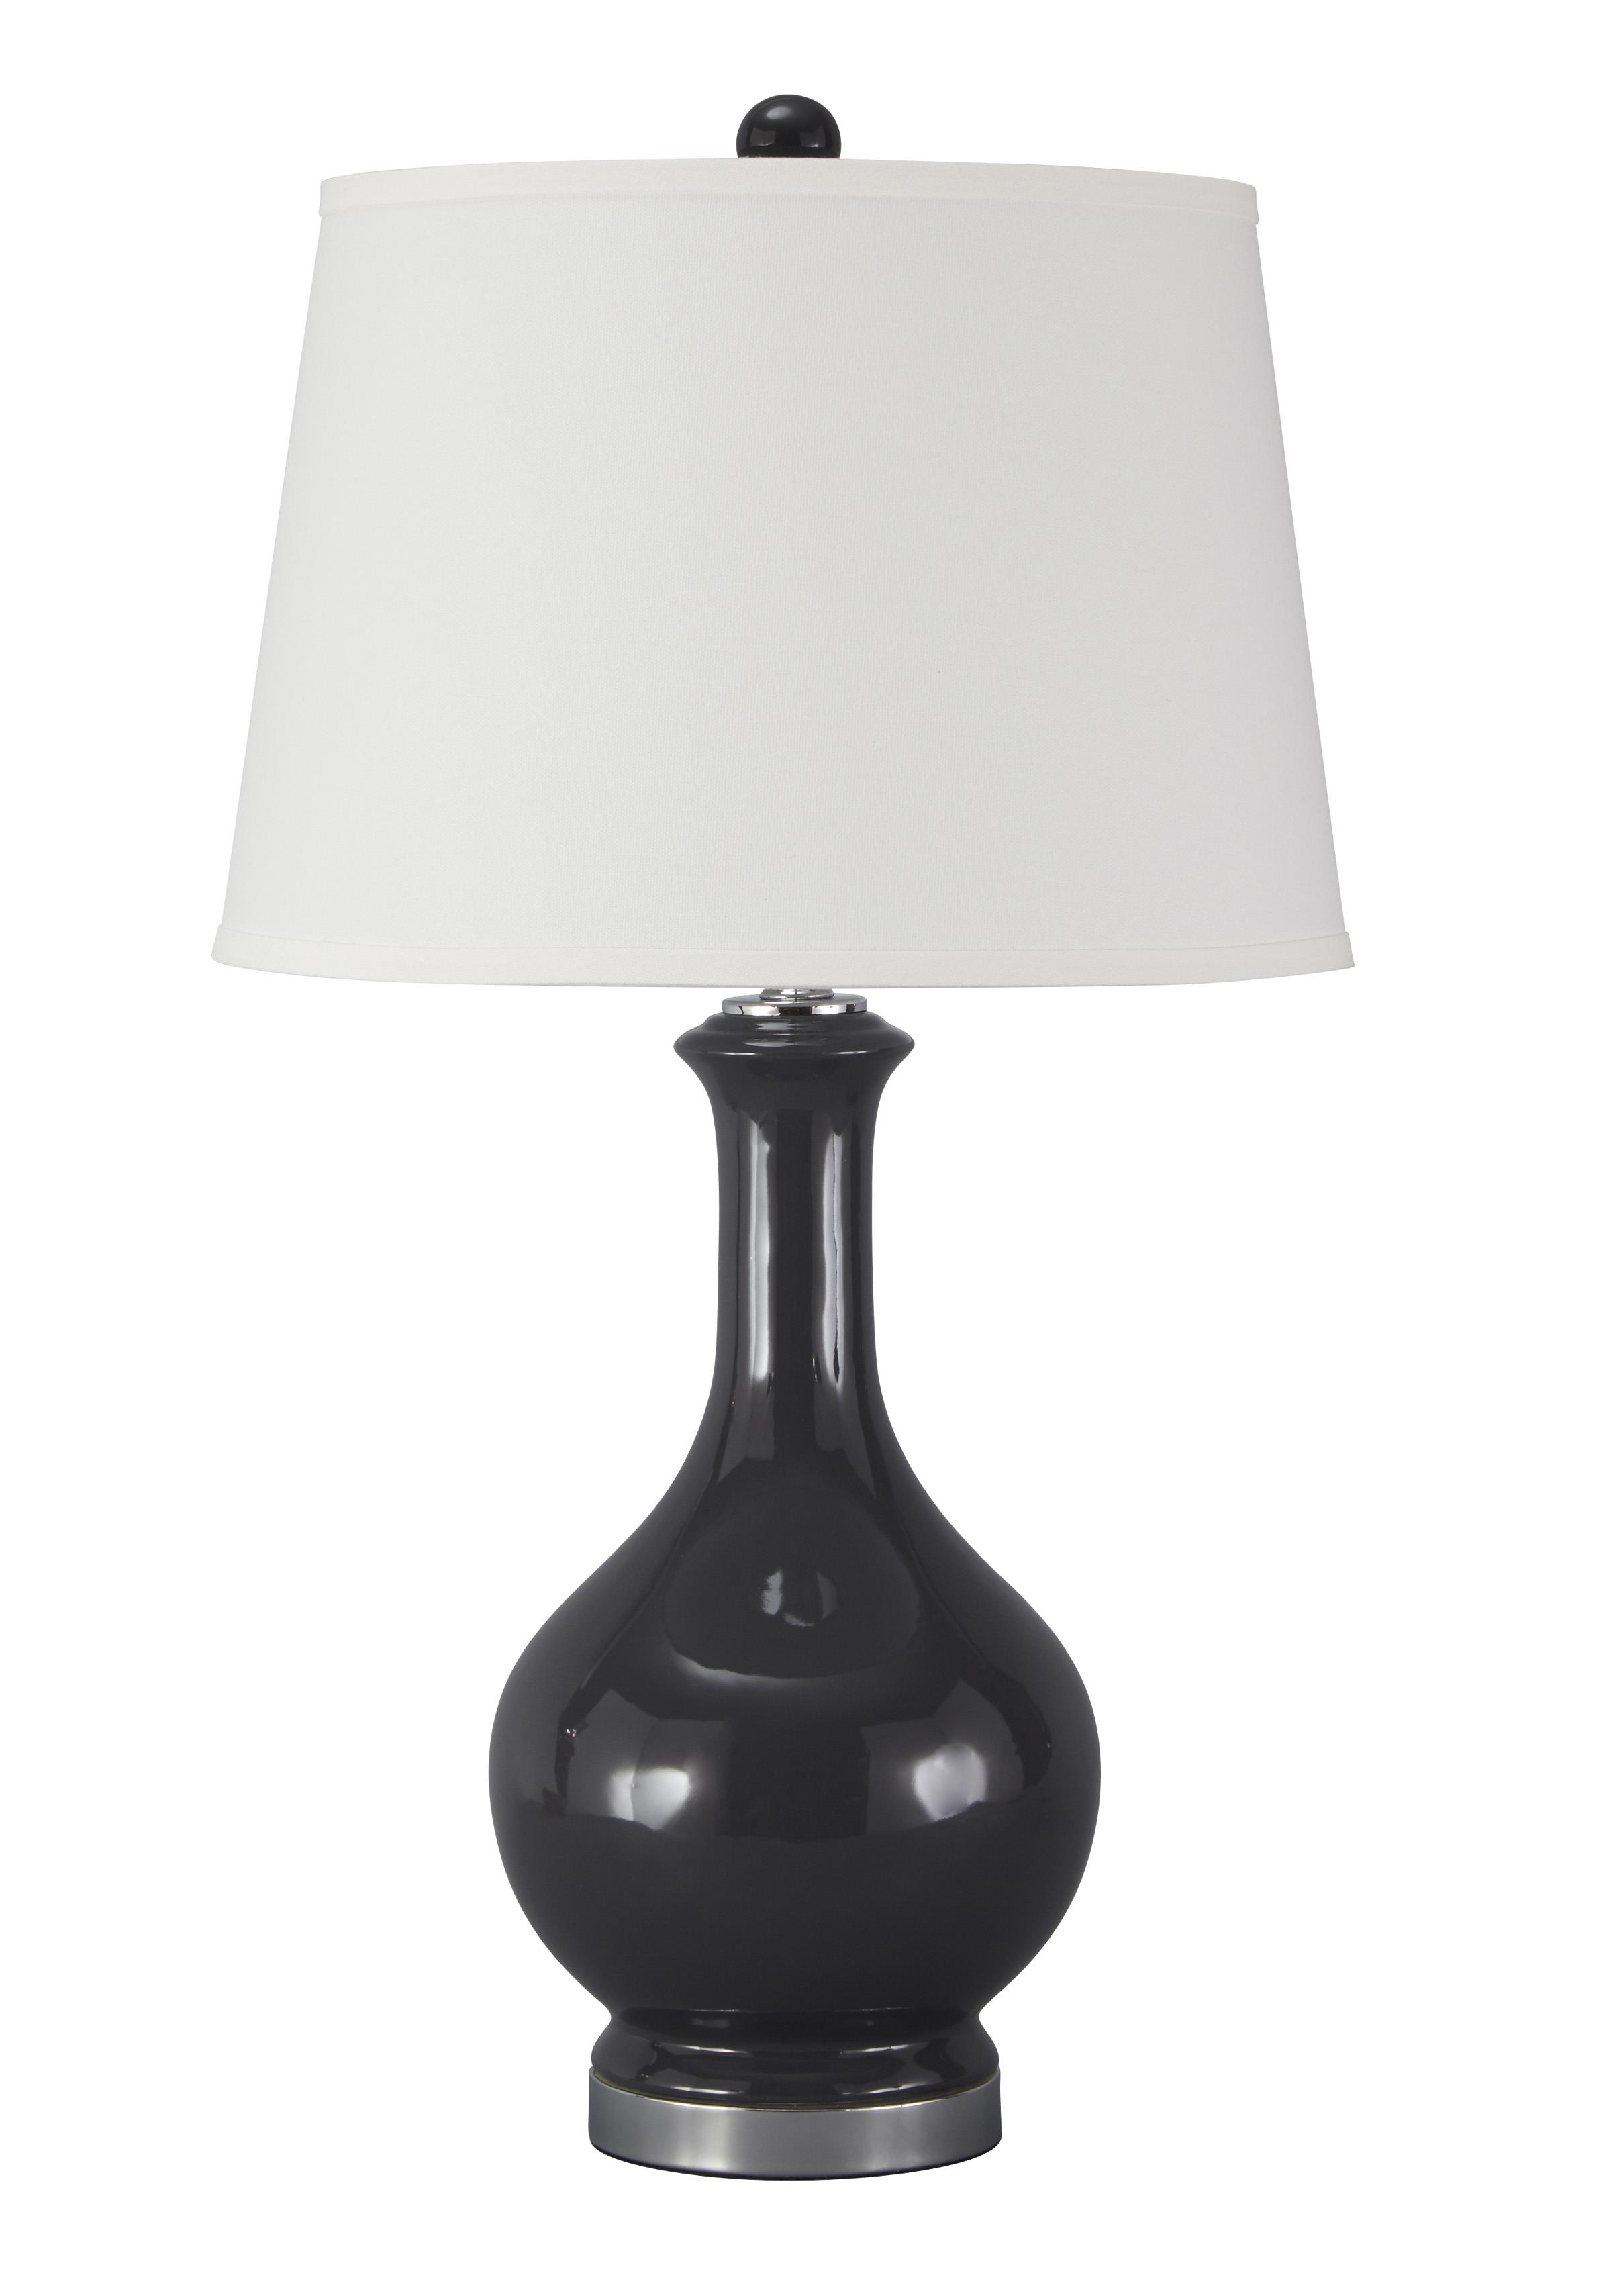 Signature Design by Ashley Lamps - Traditional Classics Shavonnia Blue Ceramic Table Lamp - Item Number: L100434